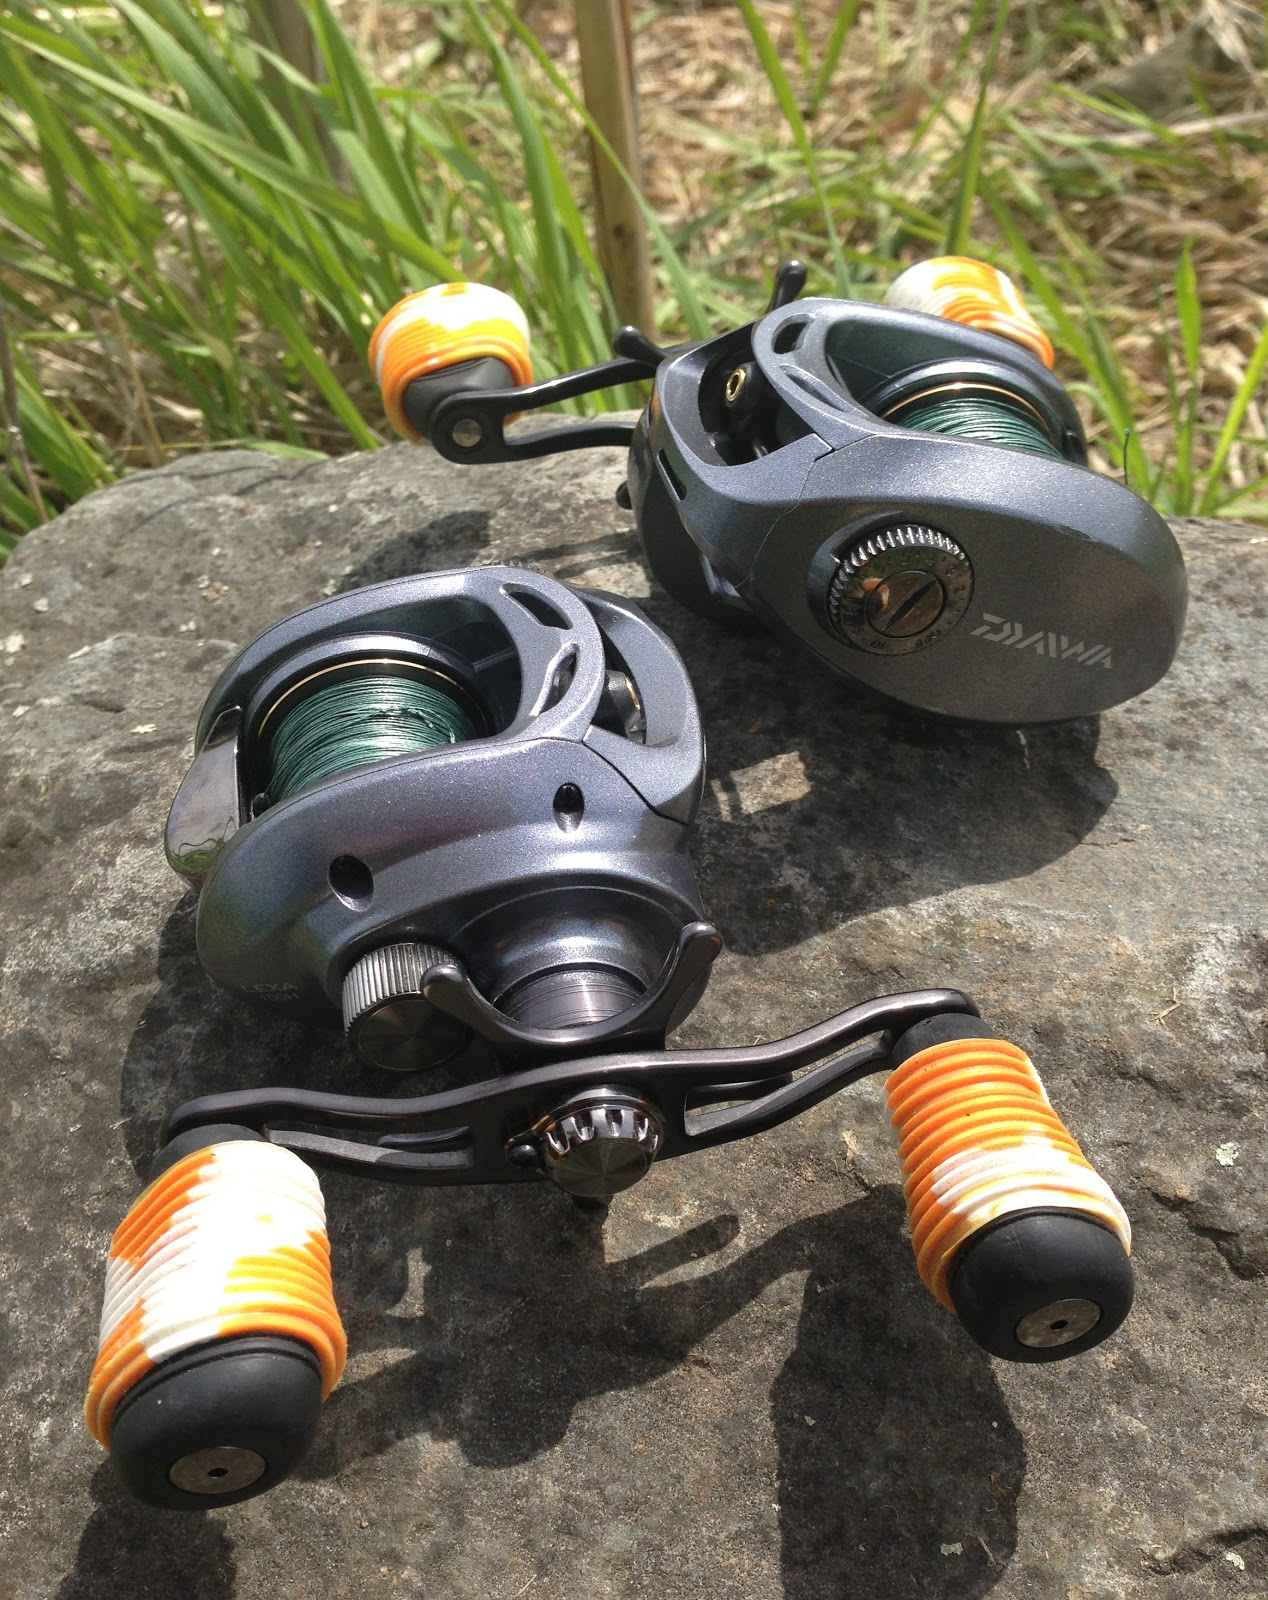 06308b8d49d Don't just take my word for it, check out this review by the team at Tackle  Tour, found HERE